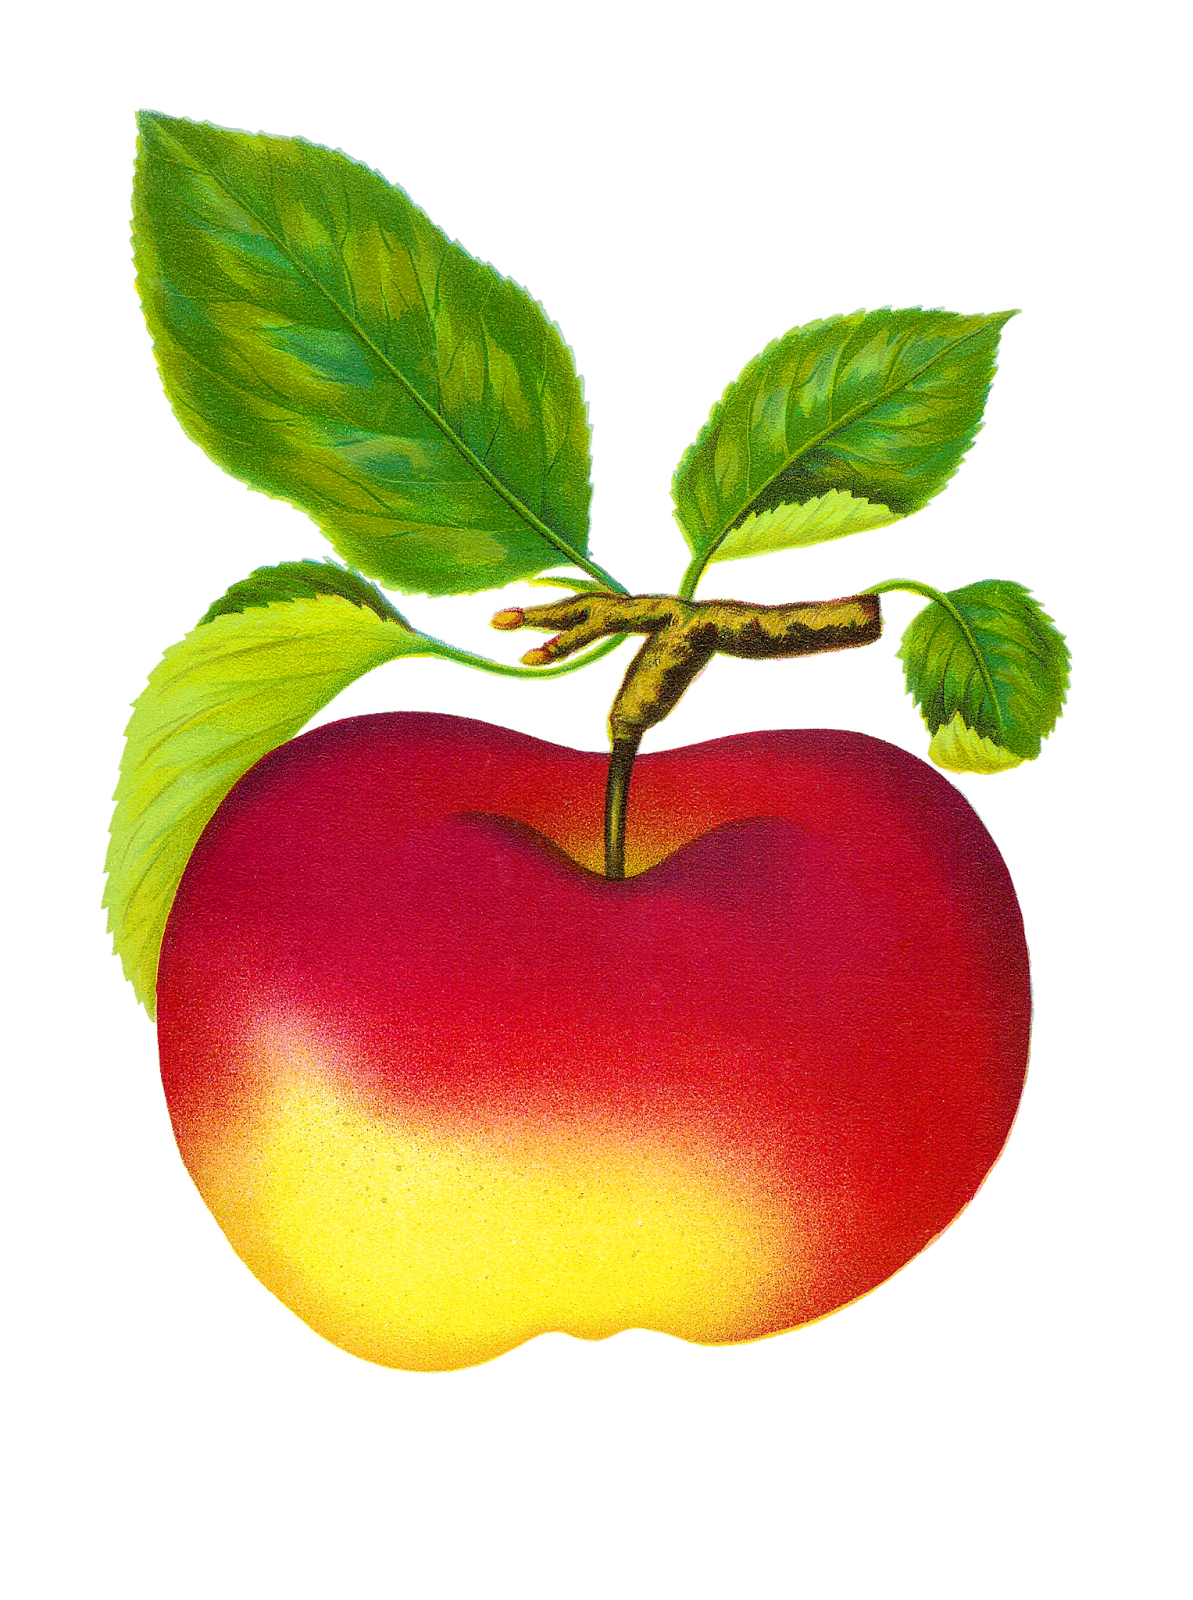 Vintage apple free clipart vector royalty free download 28+ Collection of Vintage Apple Clipart | High quality, free ... vector royalty free download